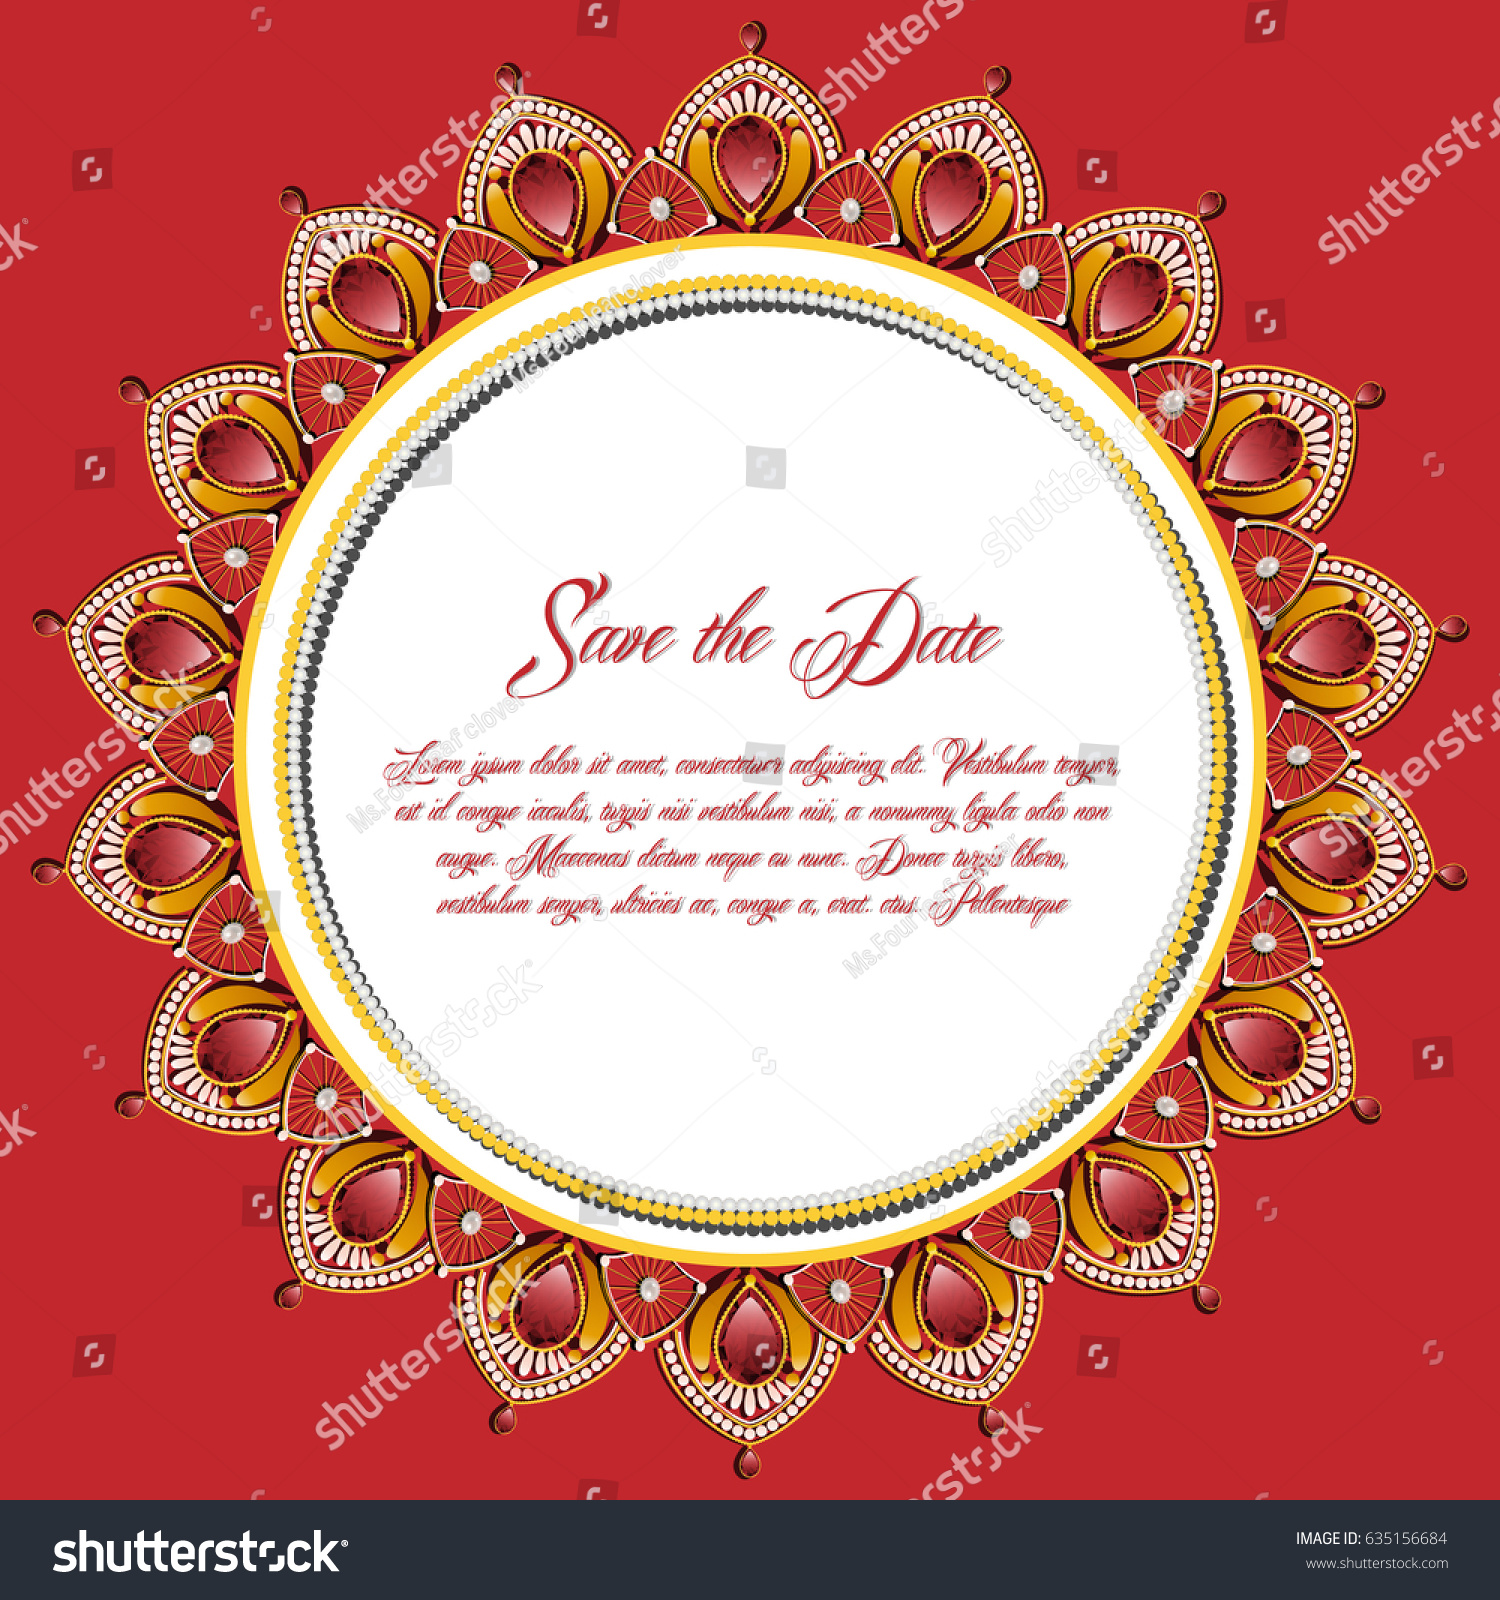 Vintage Greeting Card Gold Jewelry Decoration Stock Vector (Royalty ...